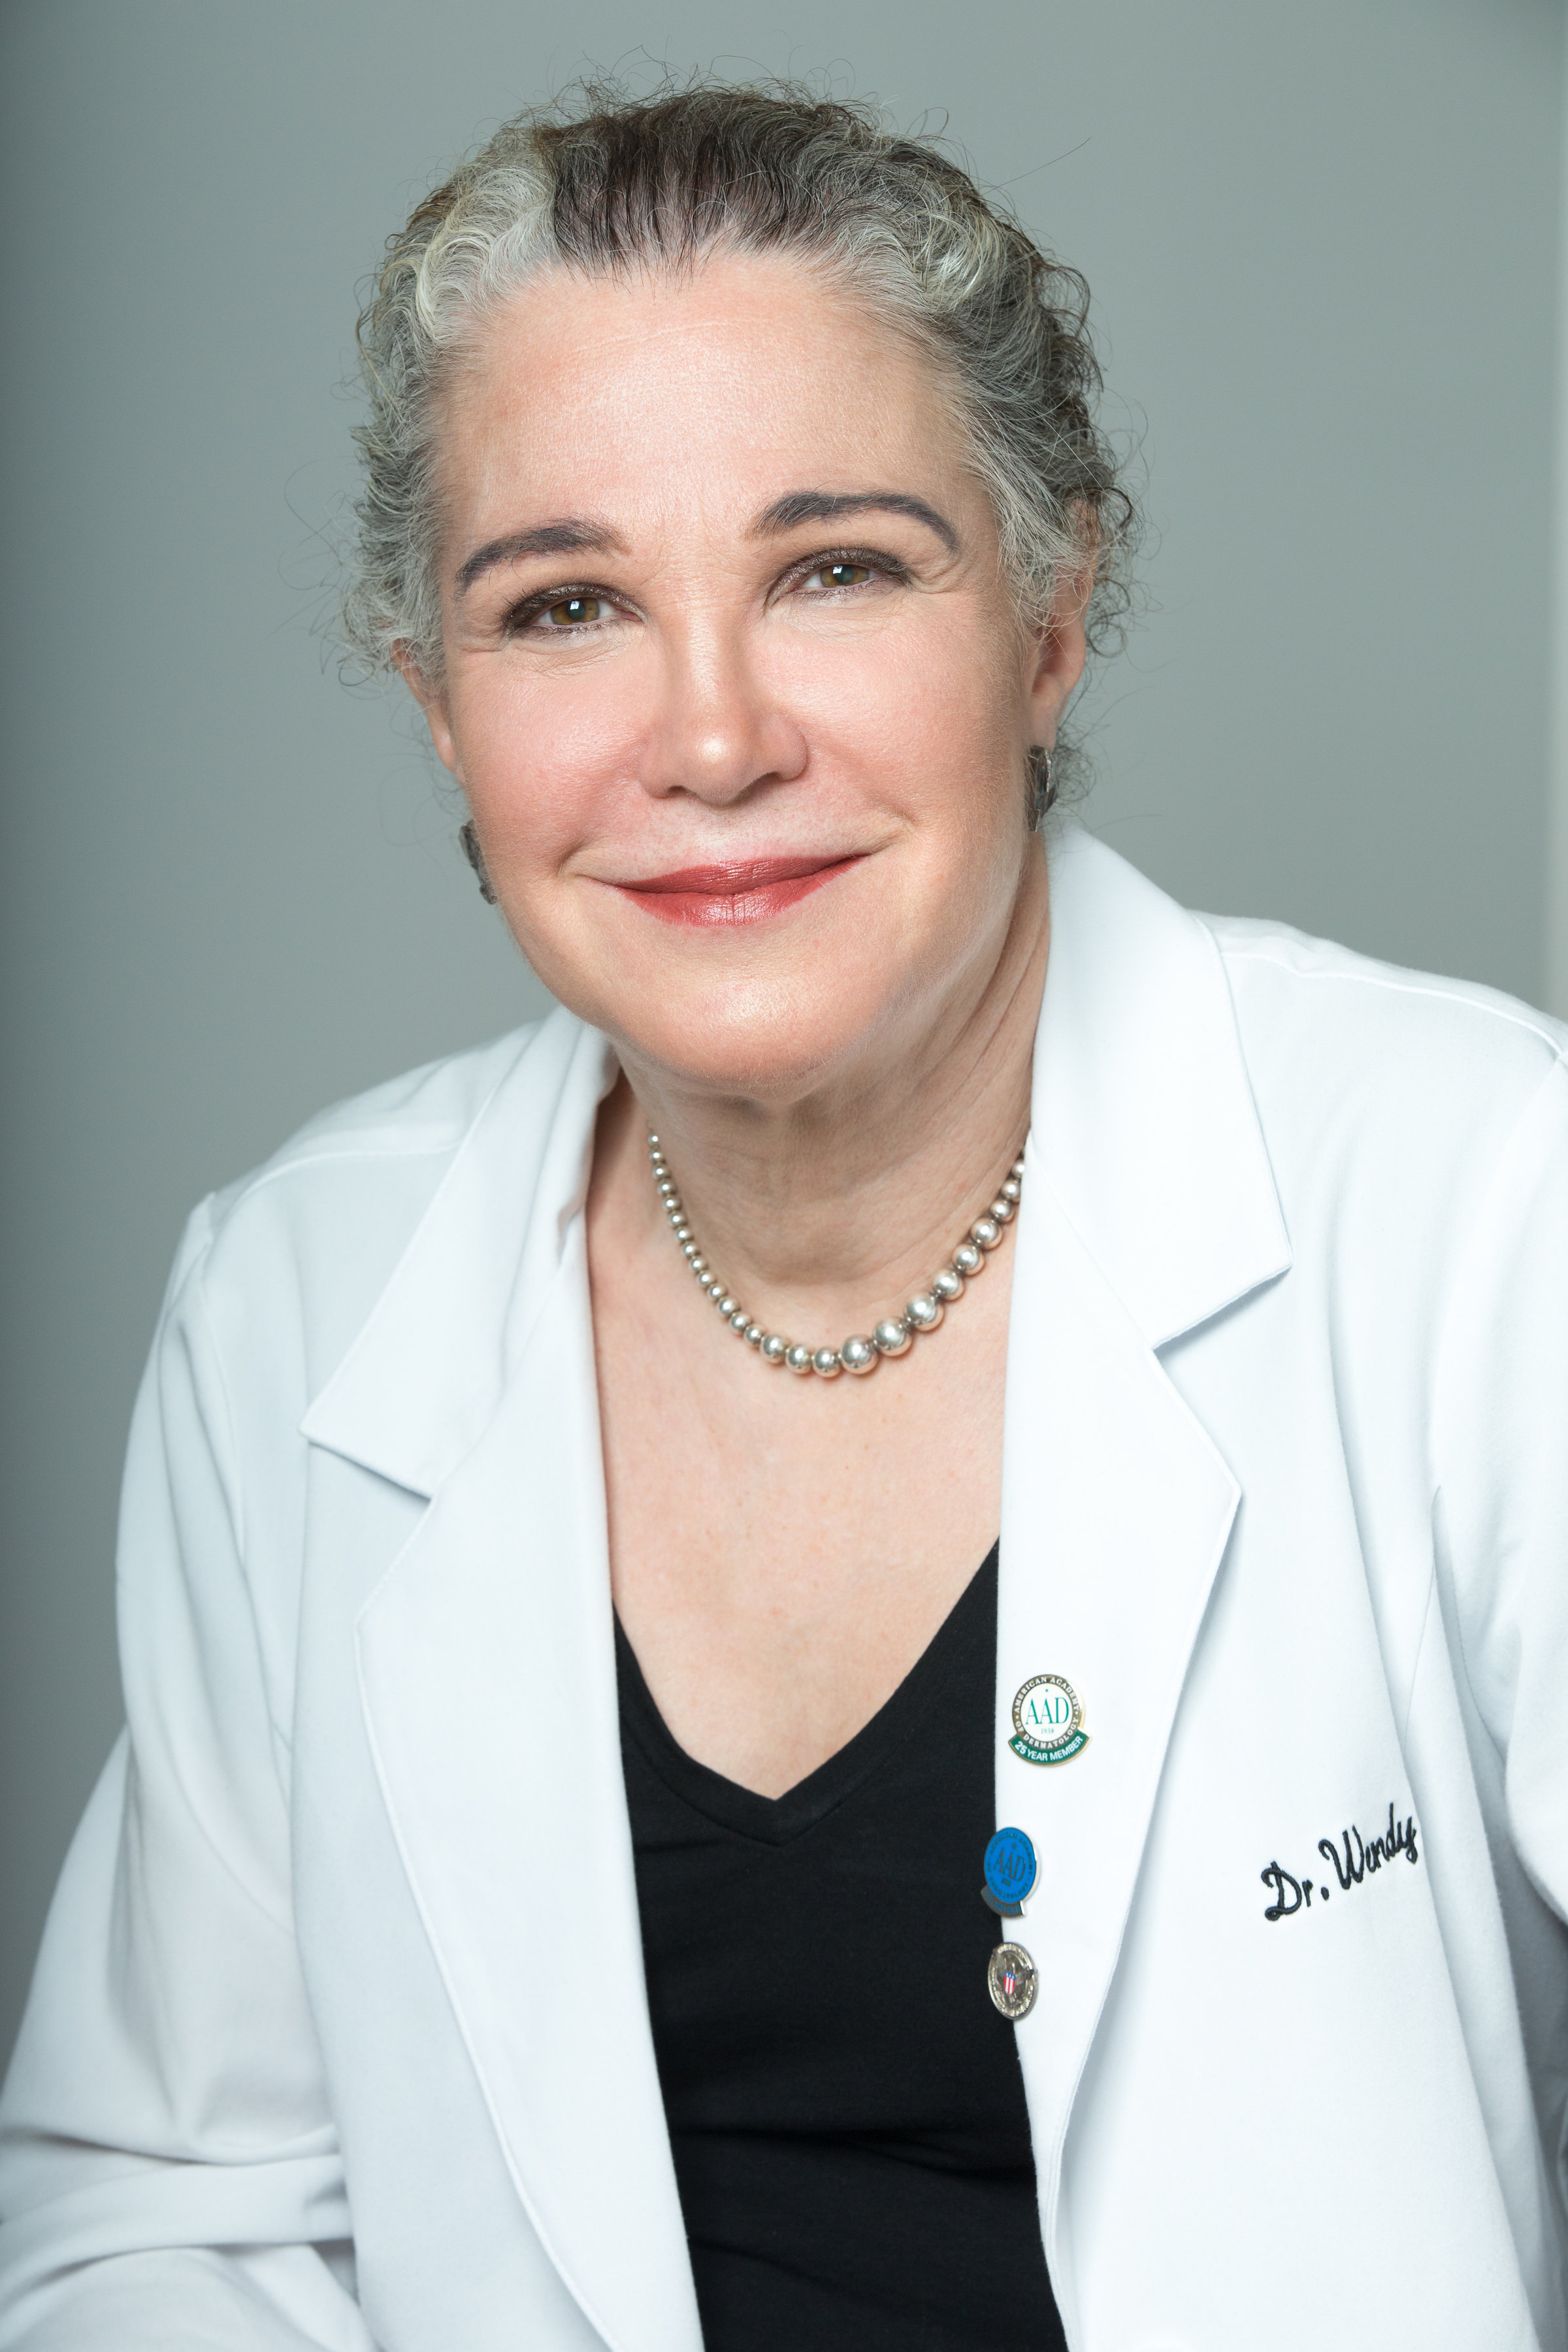 Wendy Epstein, MD Cosmetic Dermatology and Women's Health Issues